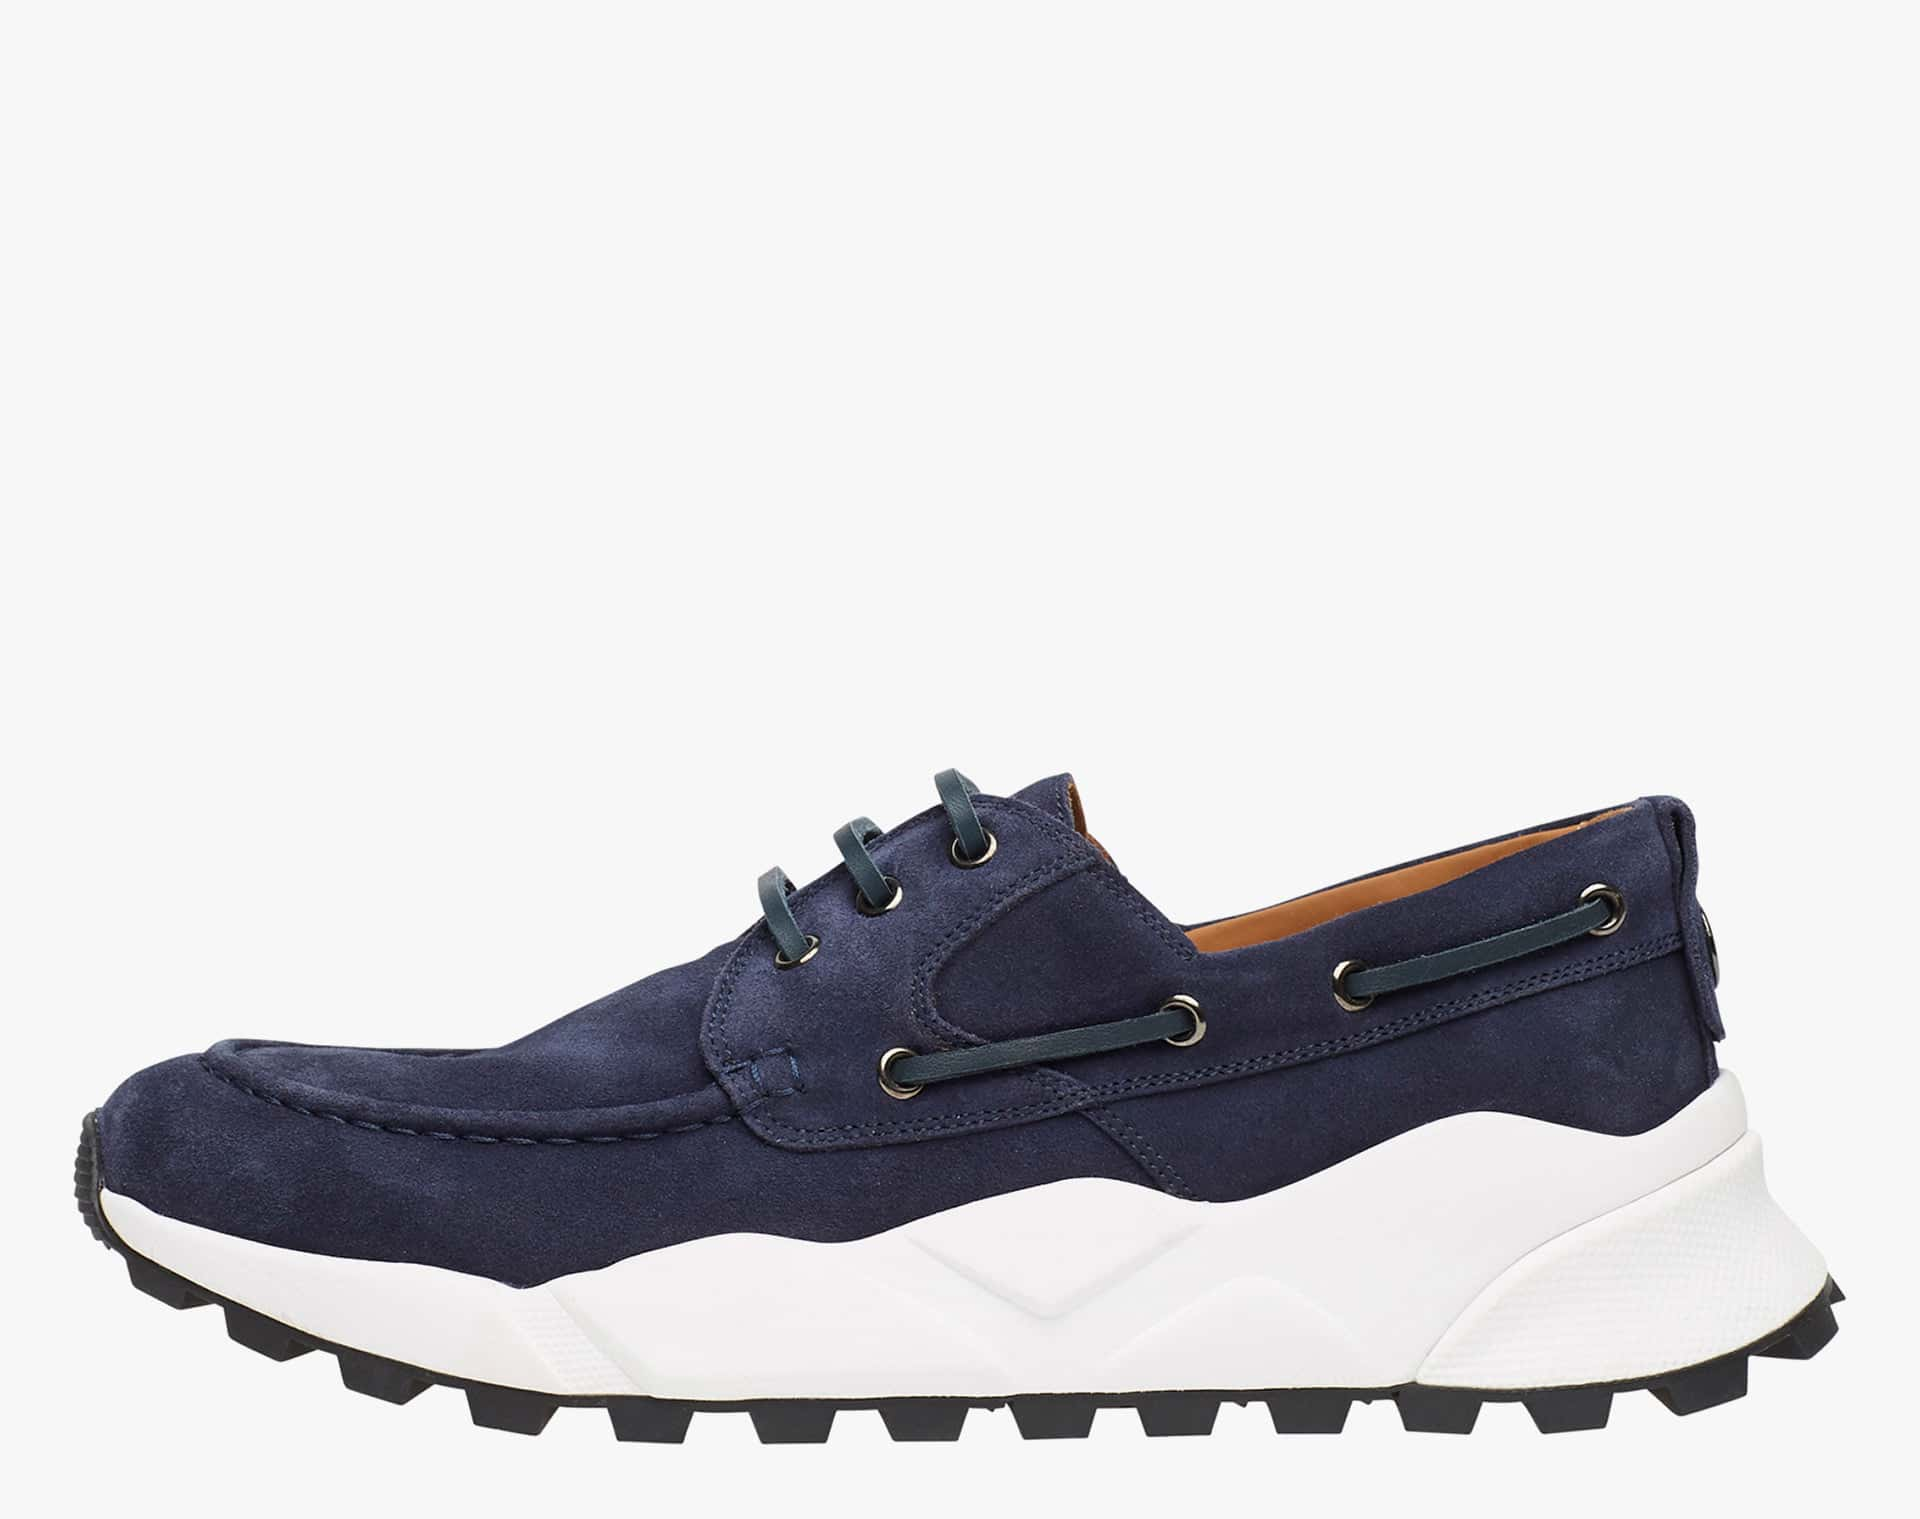 EXTREEMER - Suede sailor sneakers - Blue